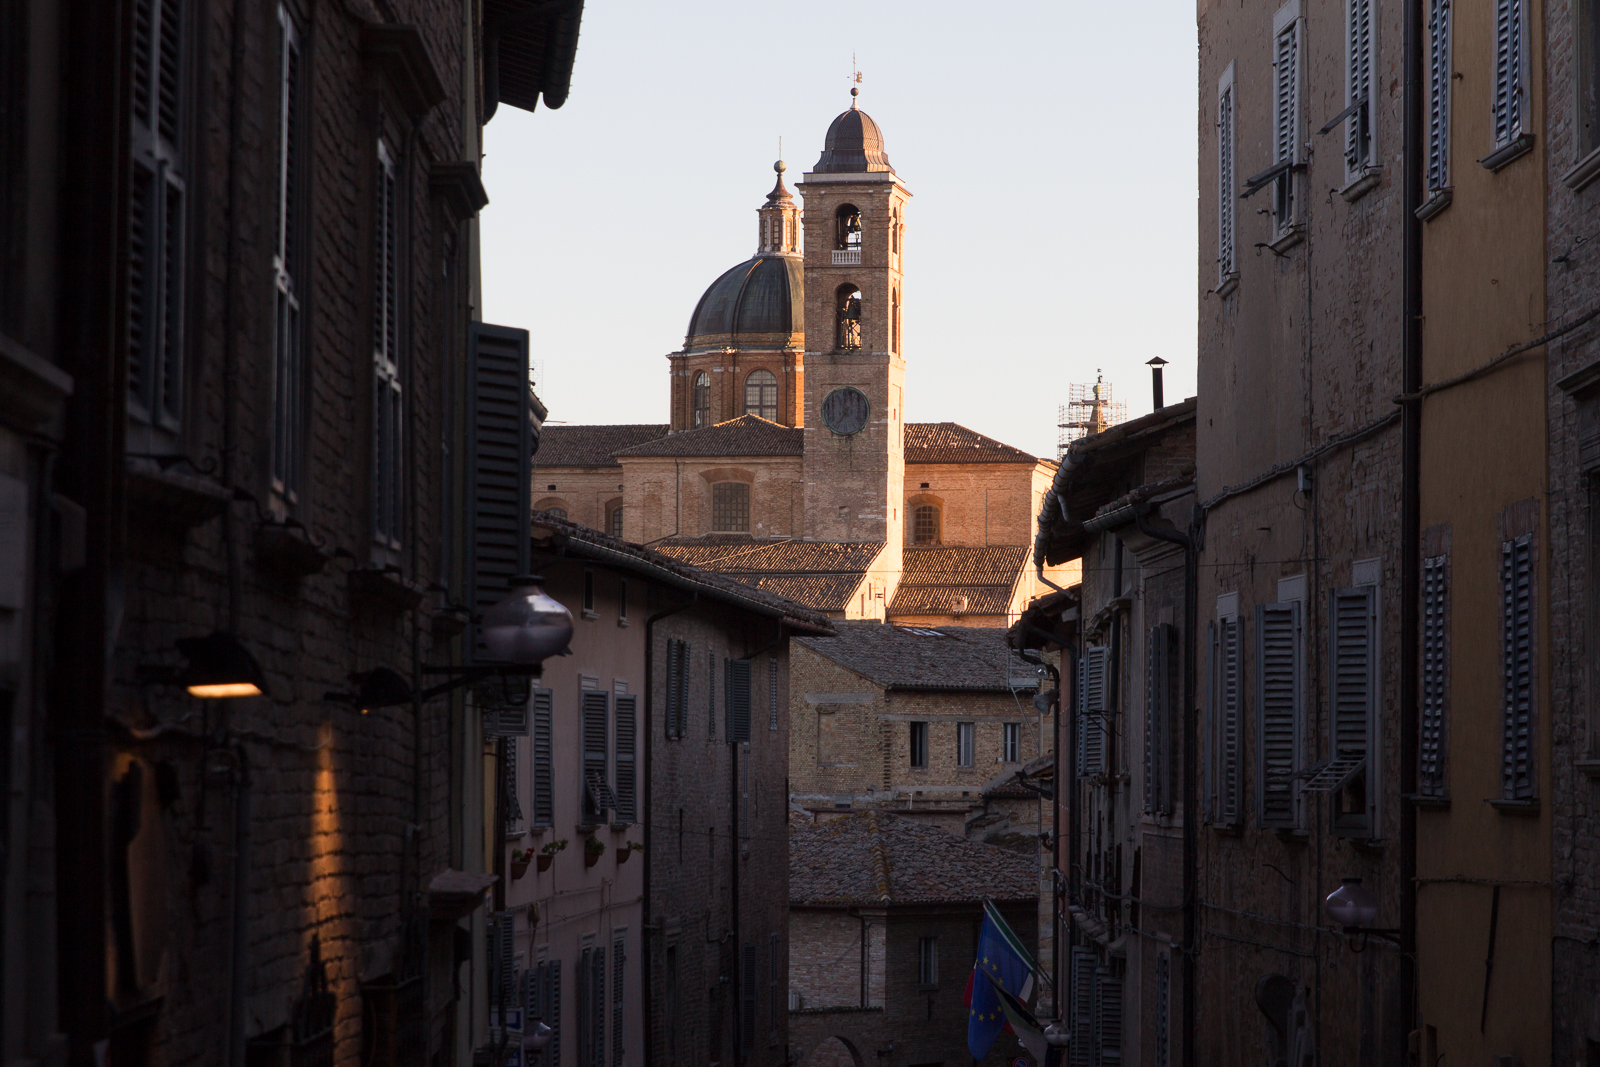 Urbino in the evening